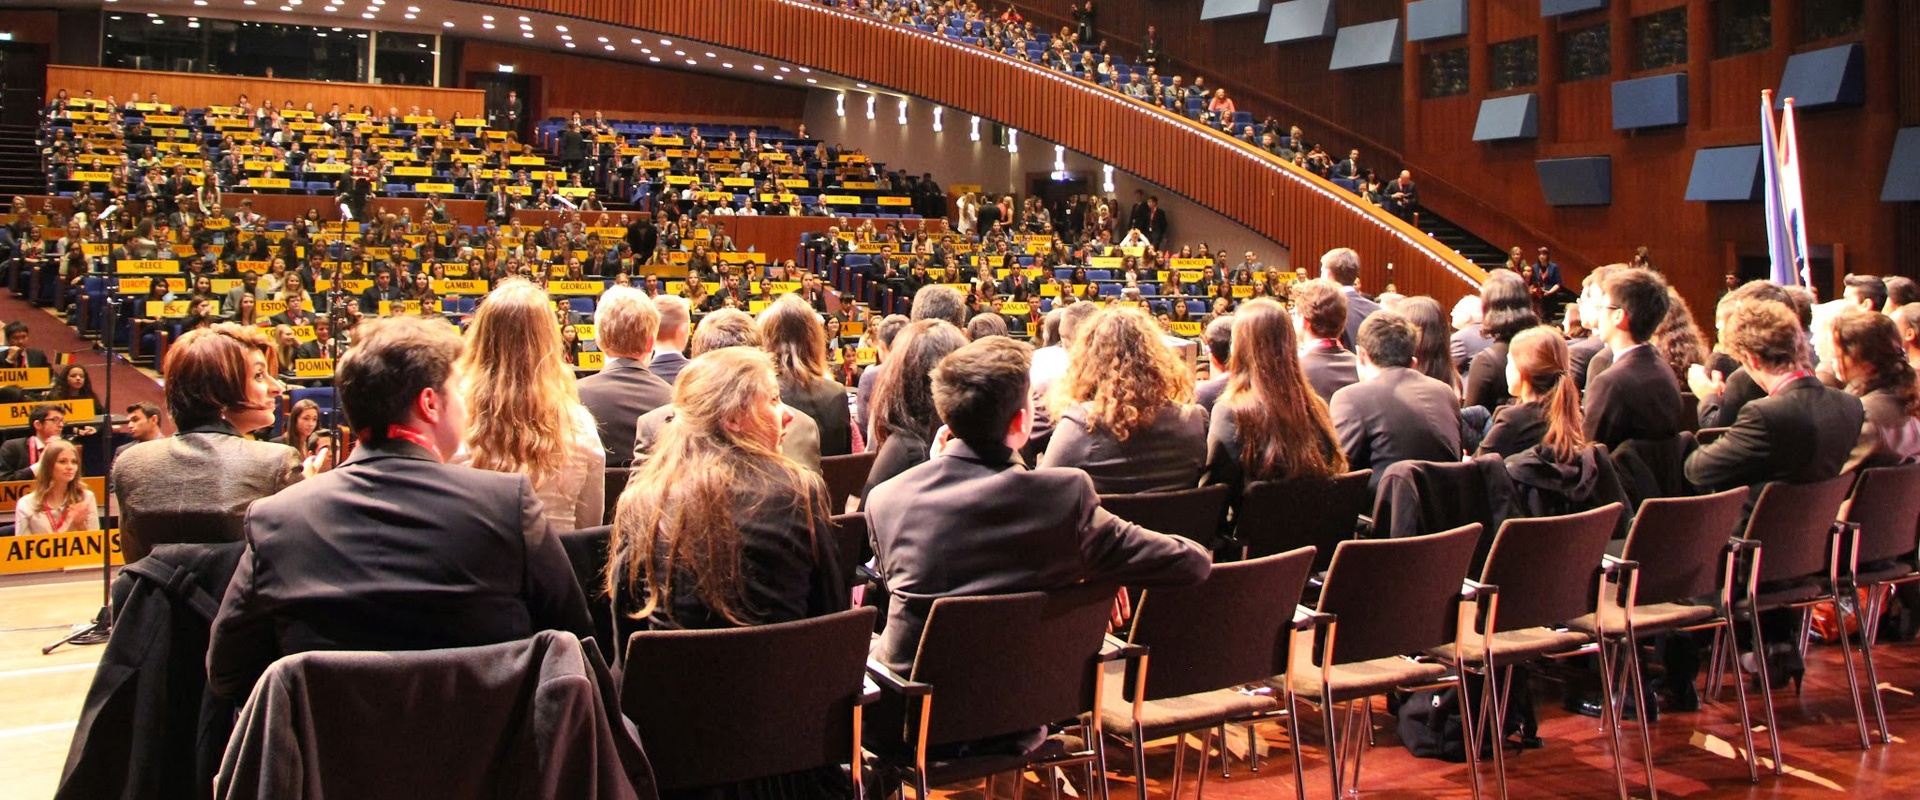 THIMUN-Model-United-Nations-in-the-Hague.jpg